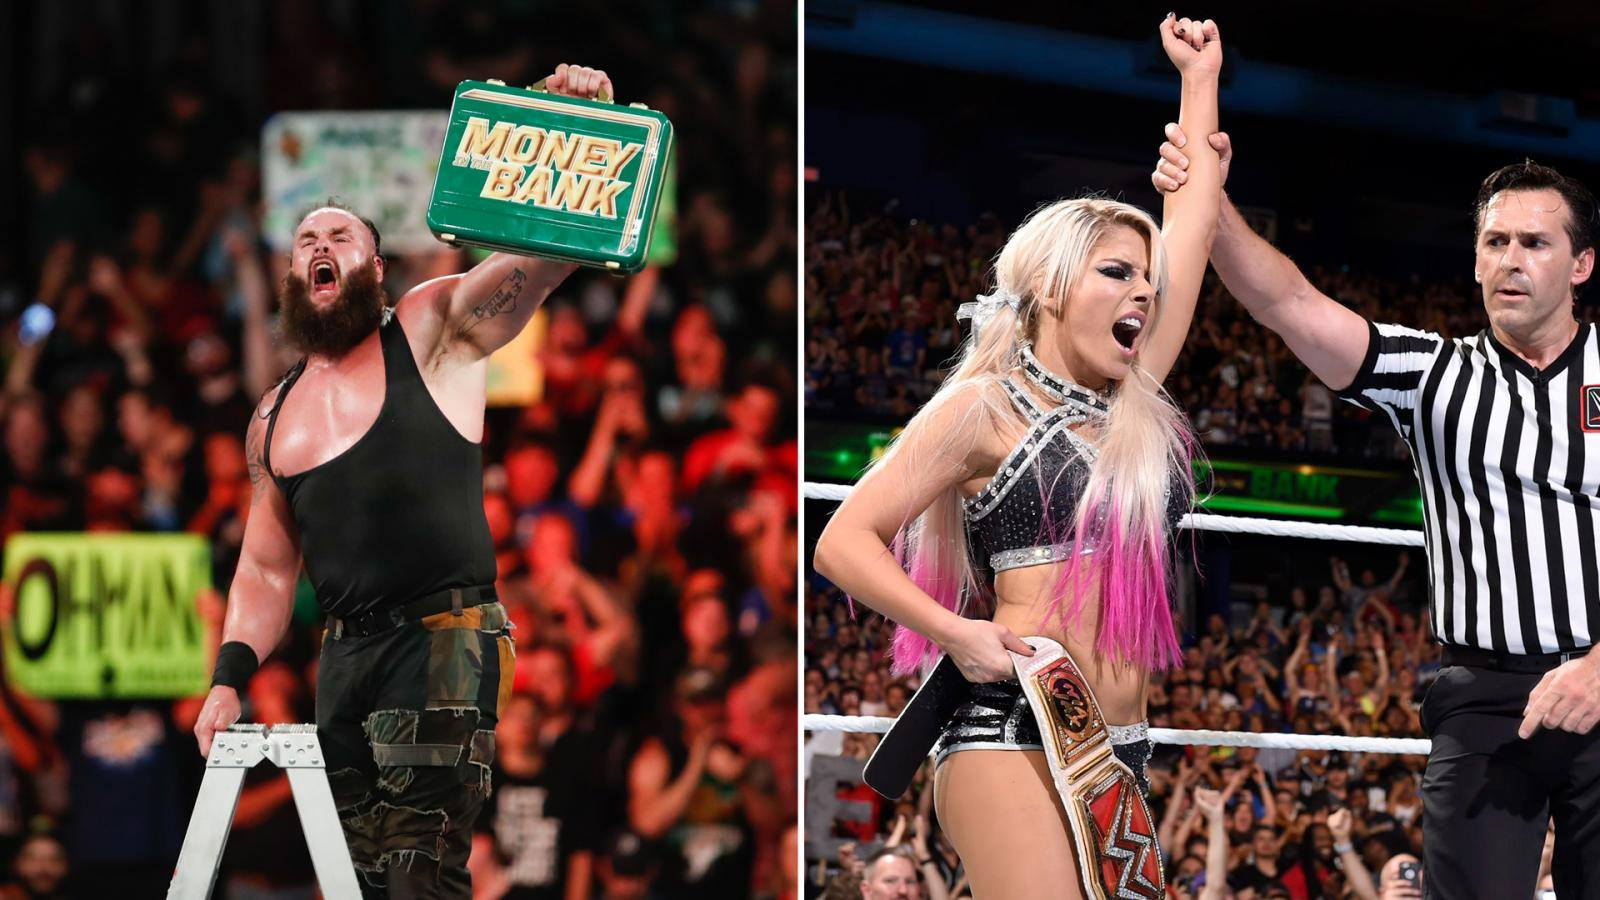 Wwe Money In The Bank 2018 Results With Video Highlight